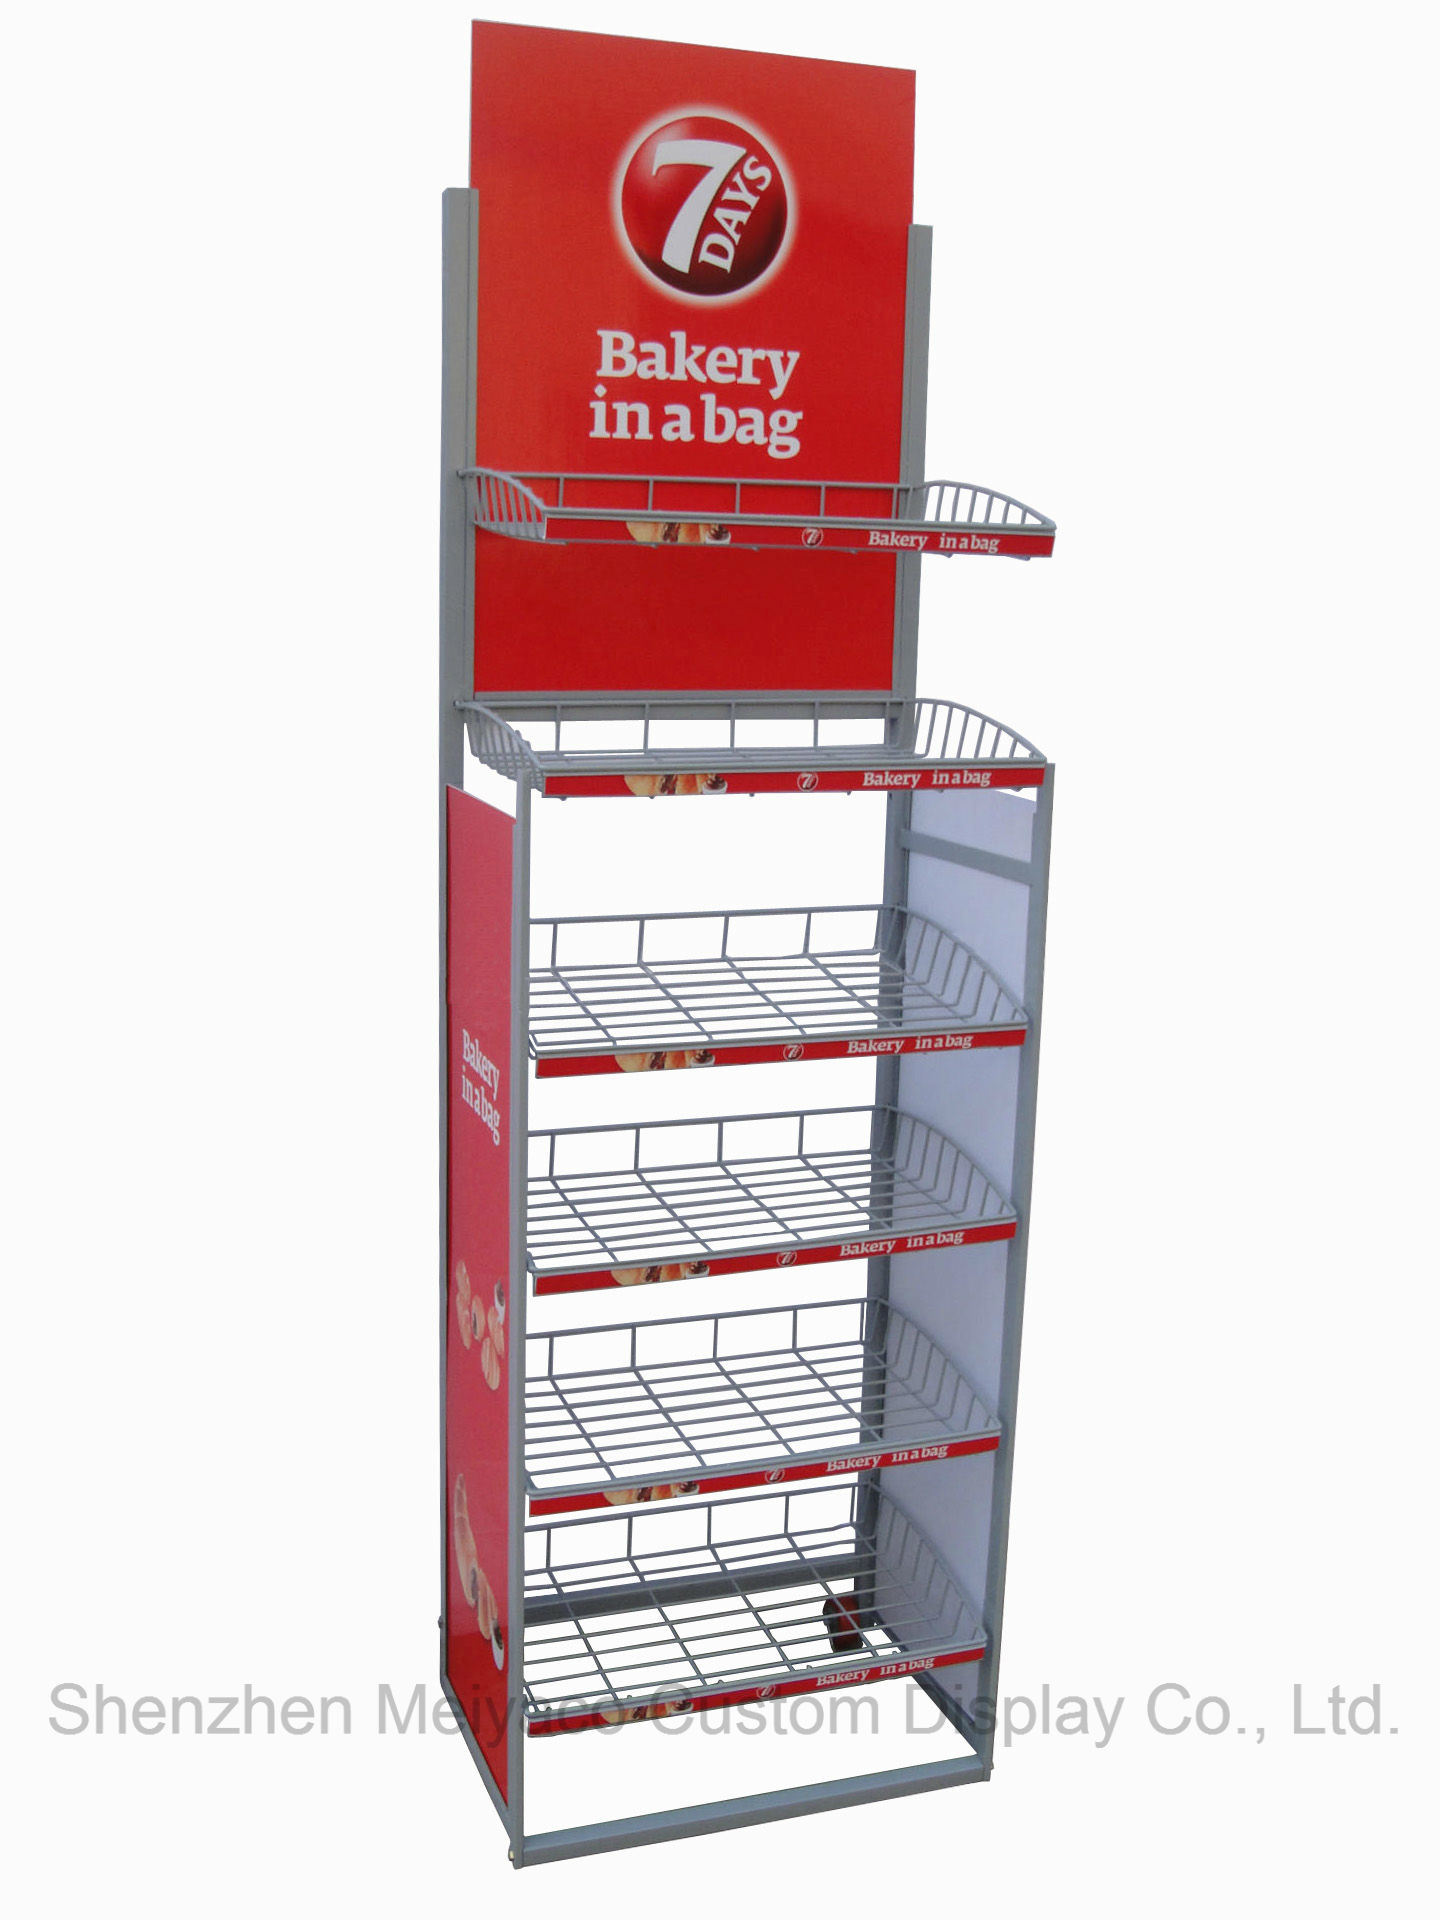 how floor rack stands compartment tray snack shelf display displays to customer your attract retail cardboard